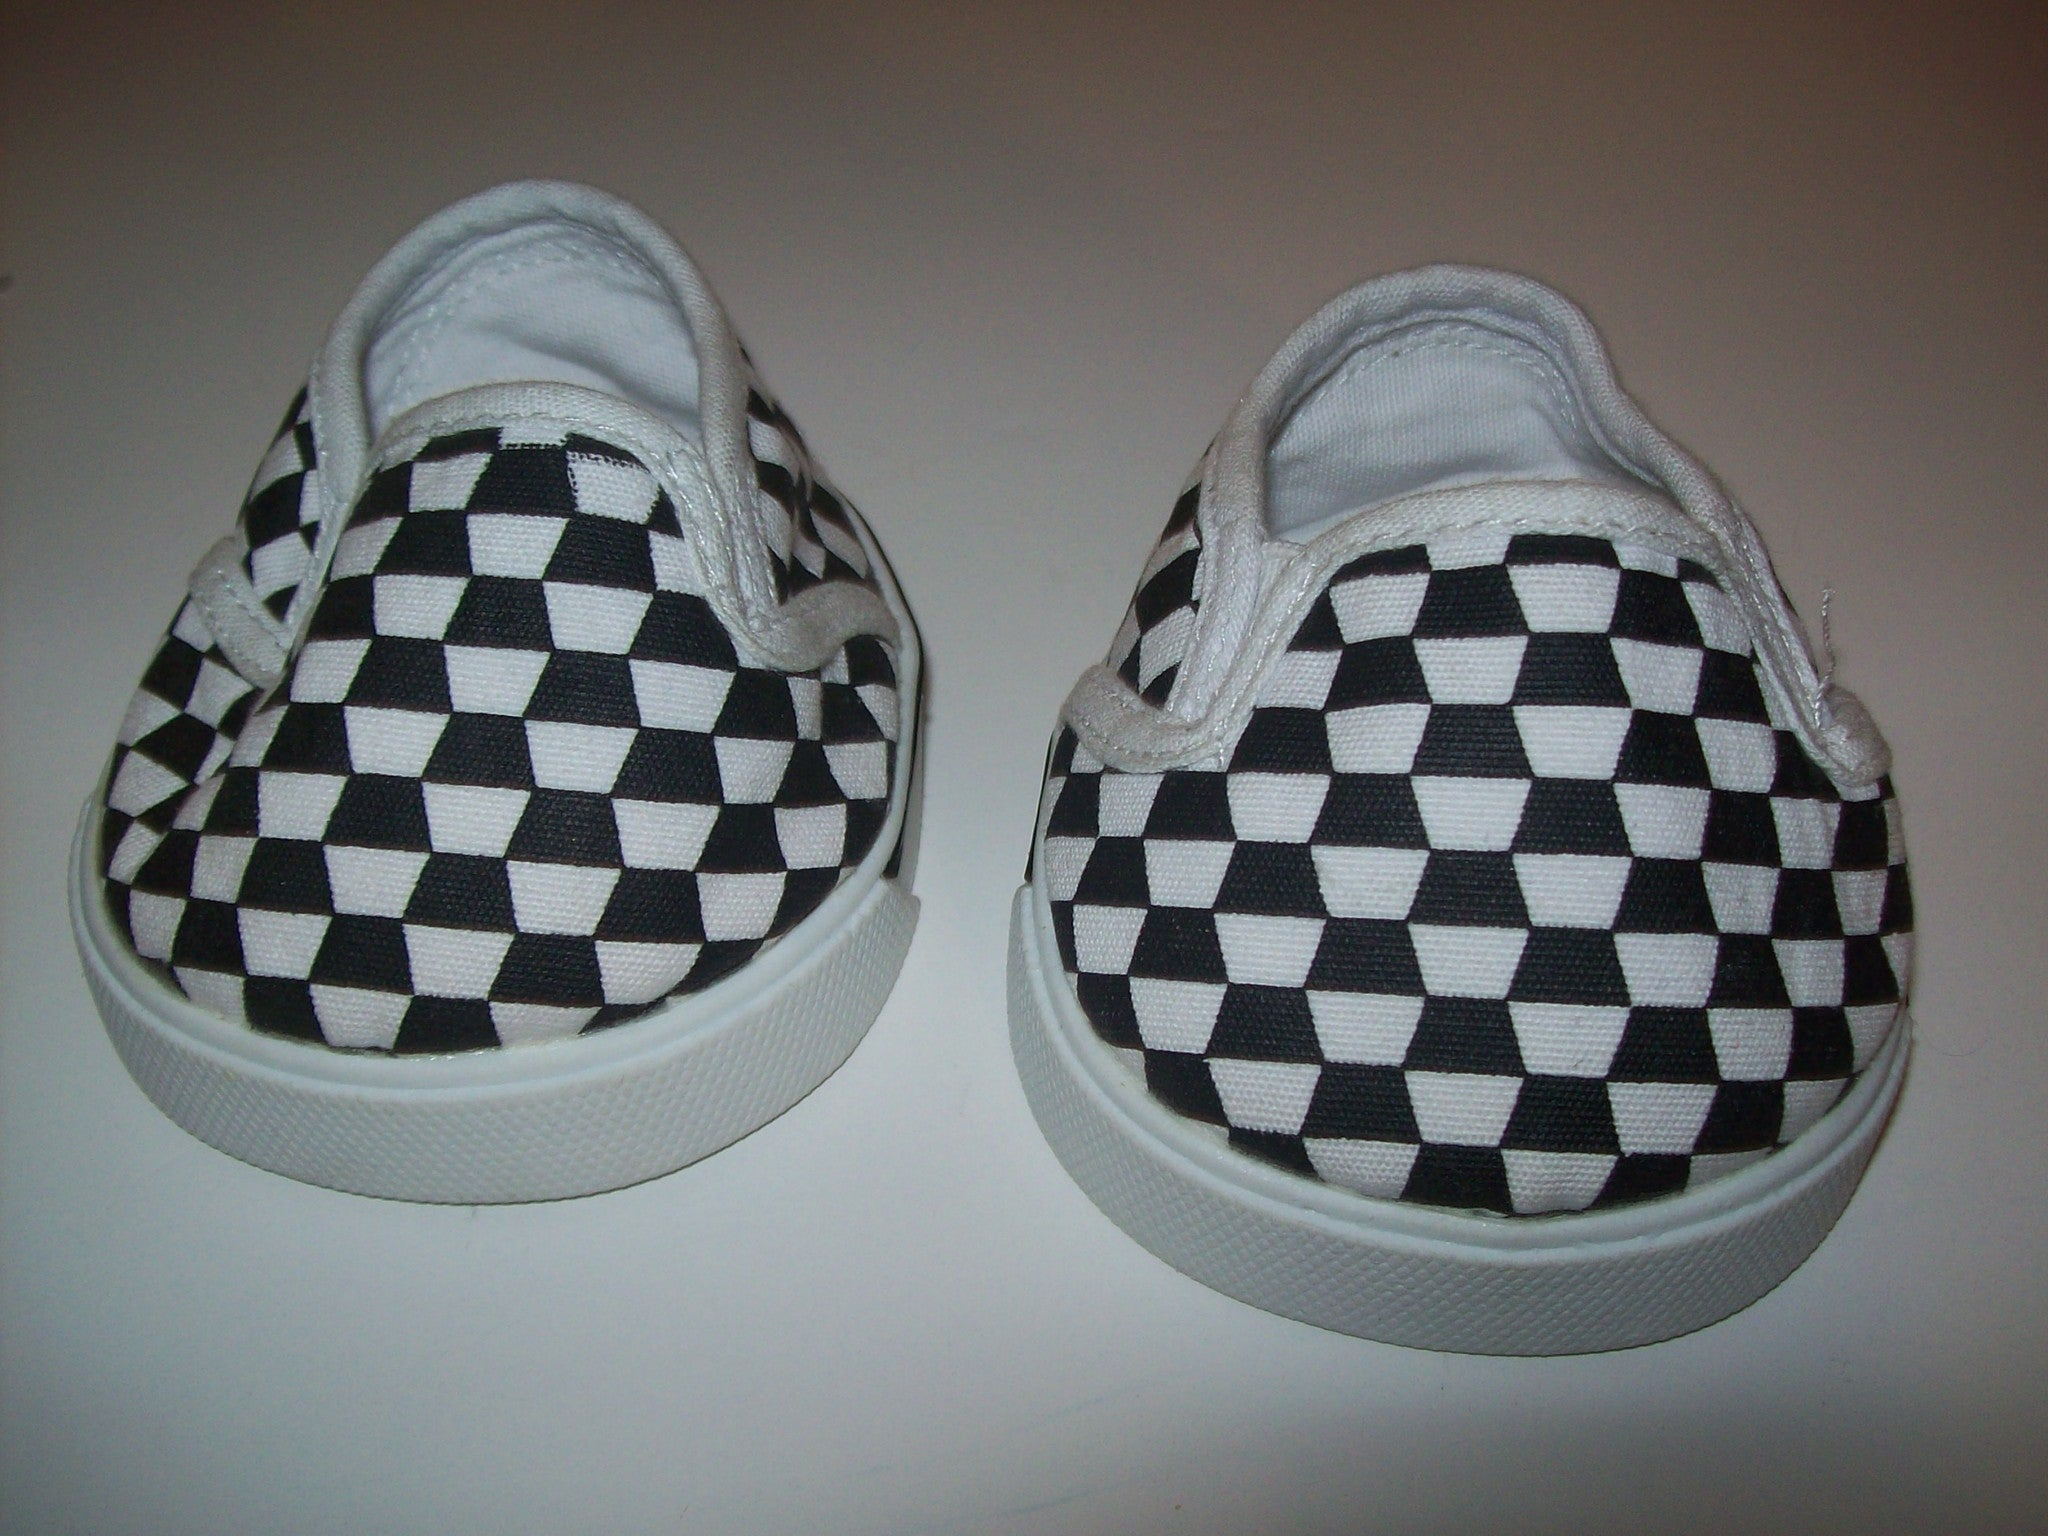 Build A Bear Checkered Shoes - We Got Character